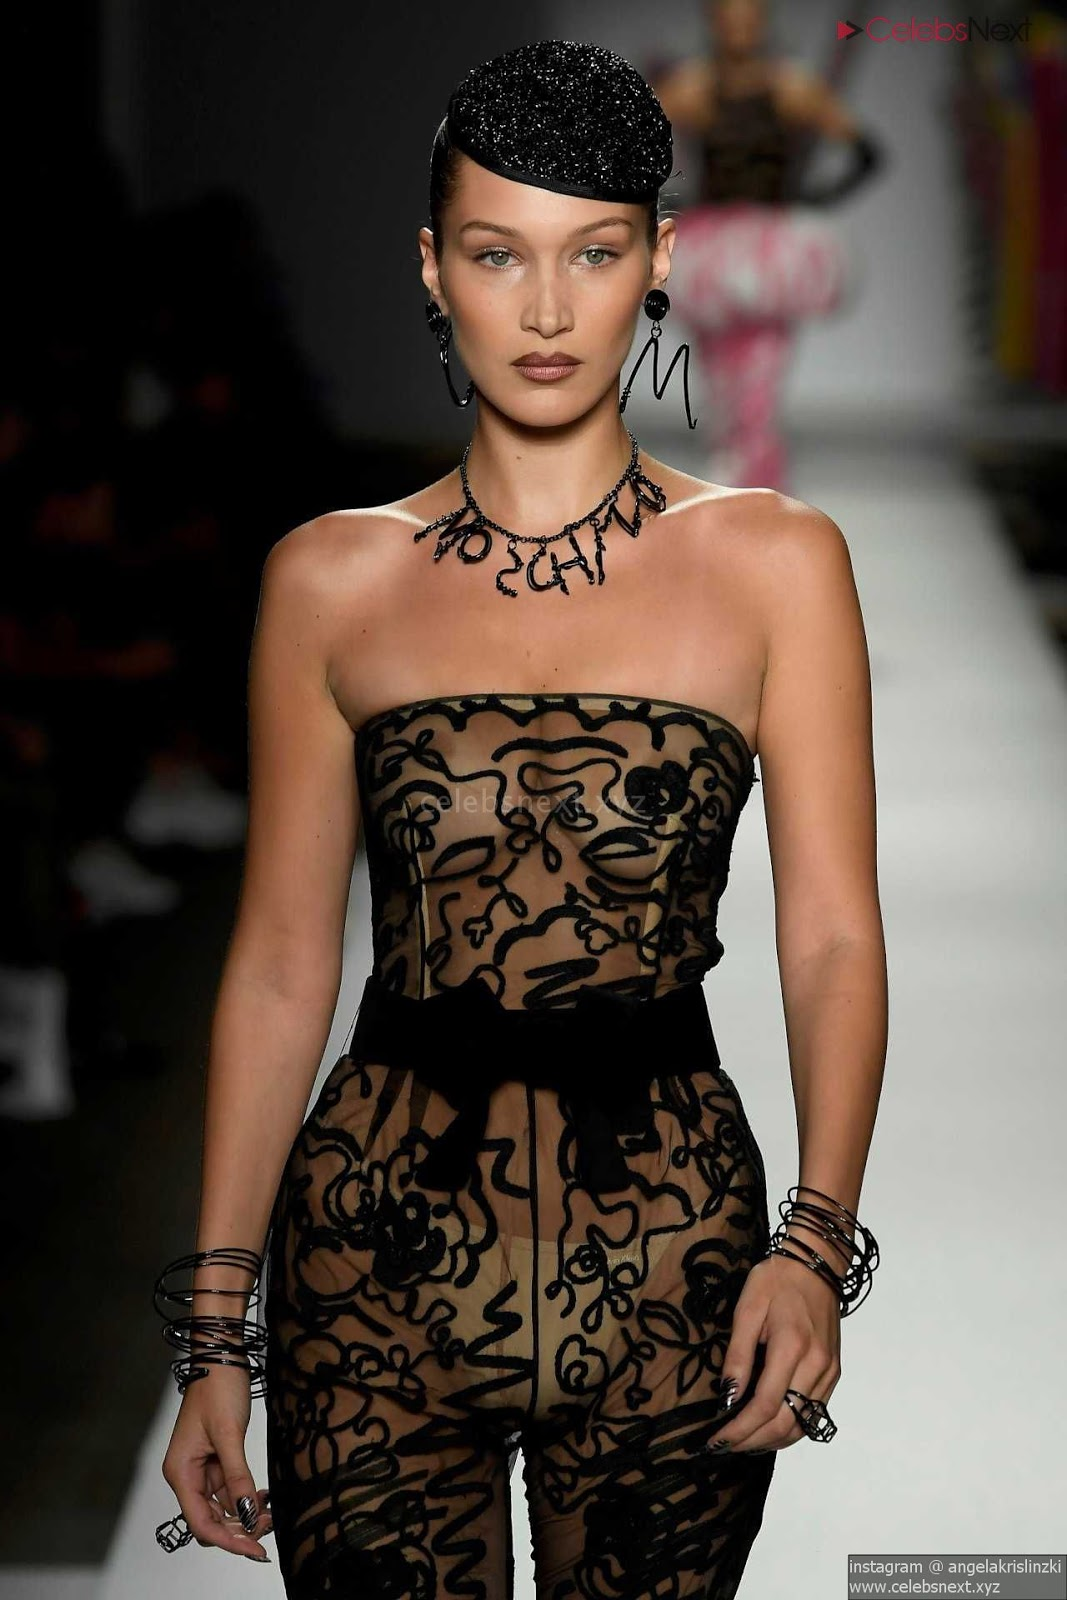 Bella Hadid See Thru Fashion Show Beautiful Boobs September 2018 Nipples Exposed l- CelebrityBooty.co Exclusive